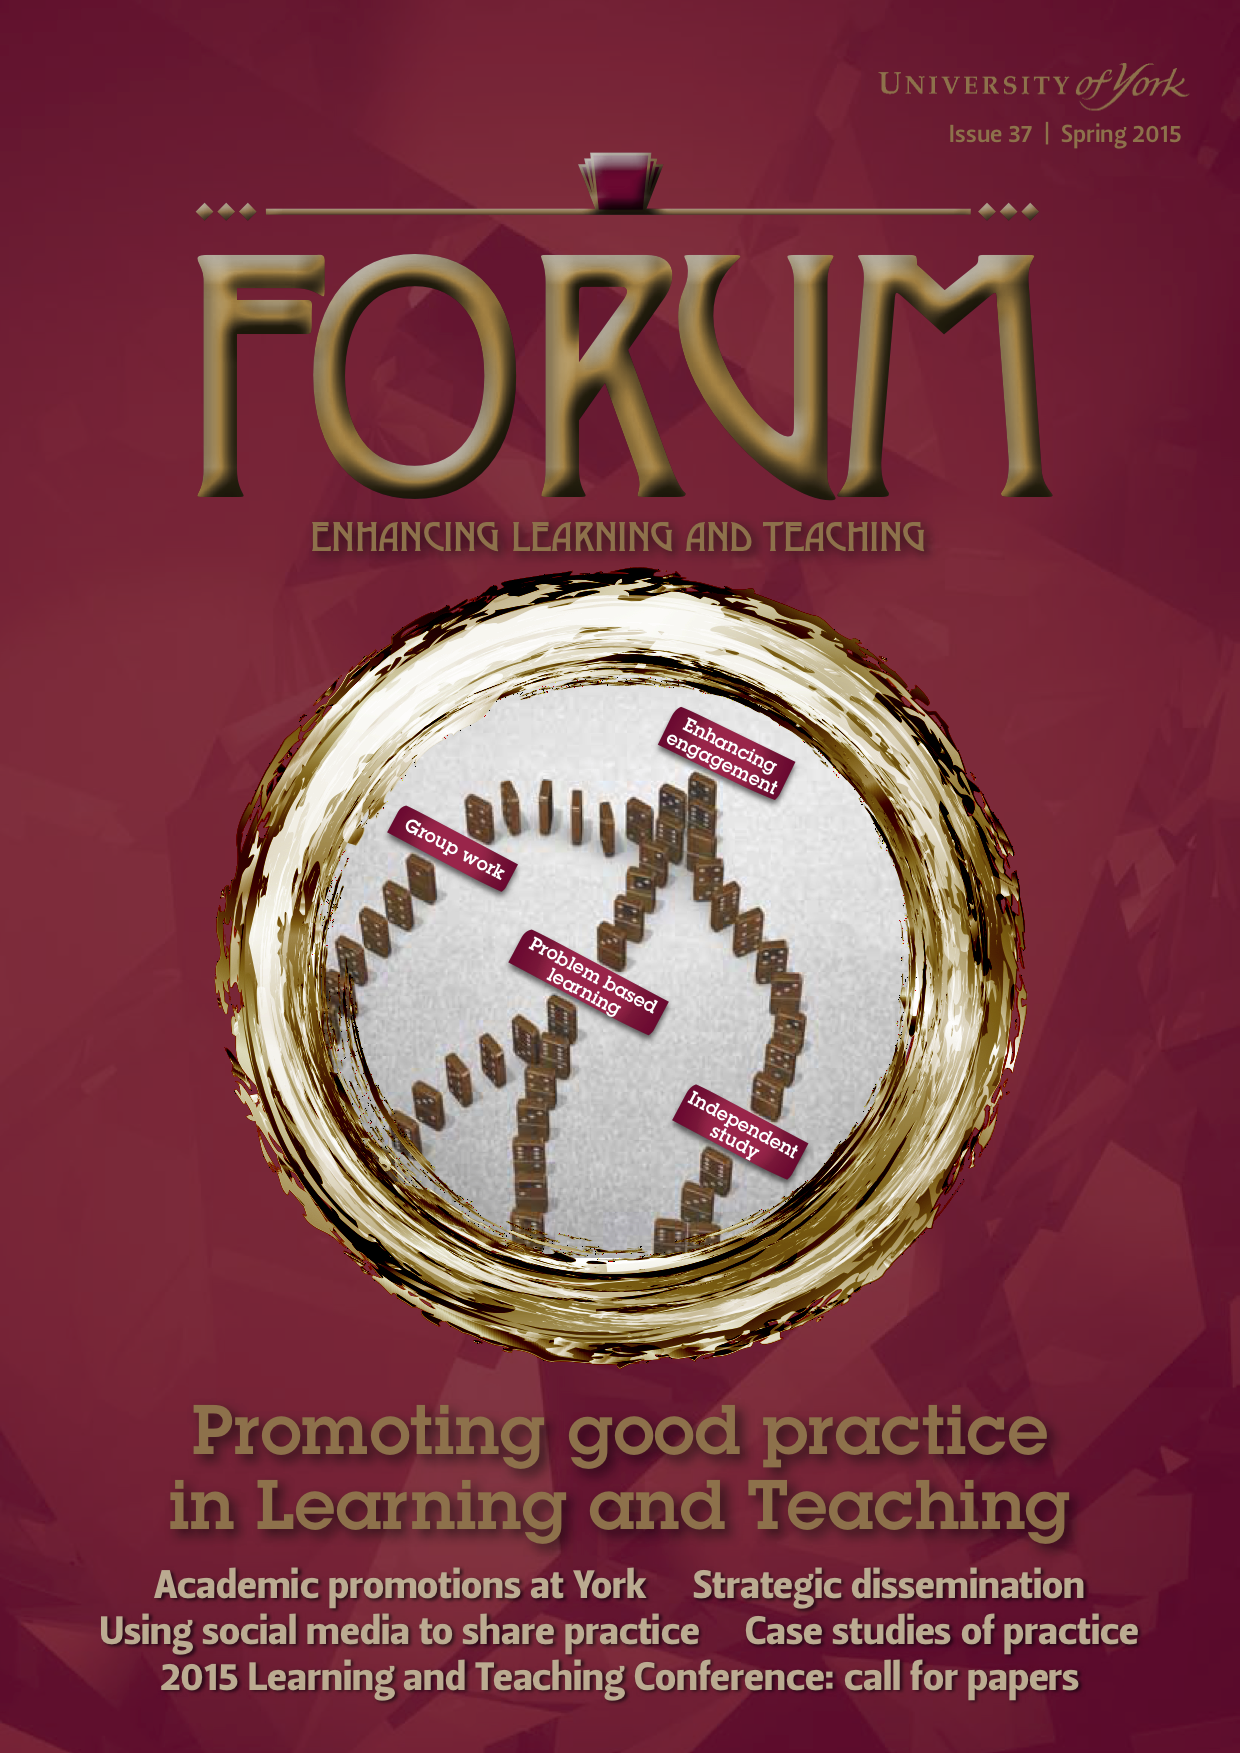 251718572-University-of-York-Forum-Issue-37-Spring-2015